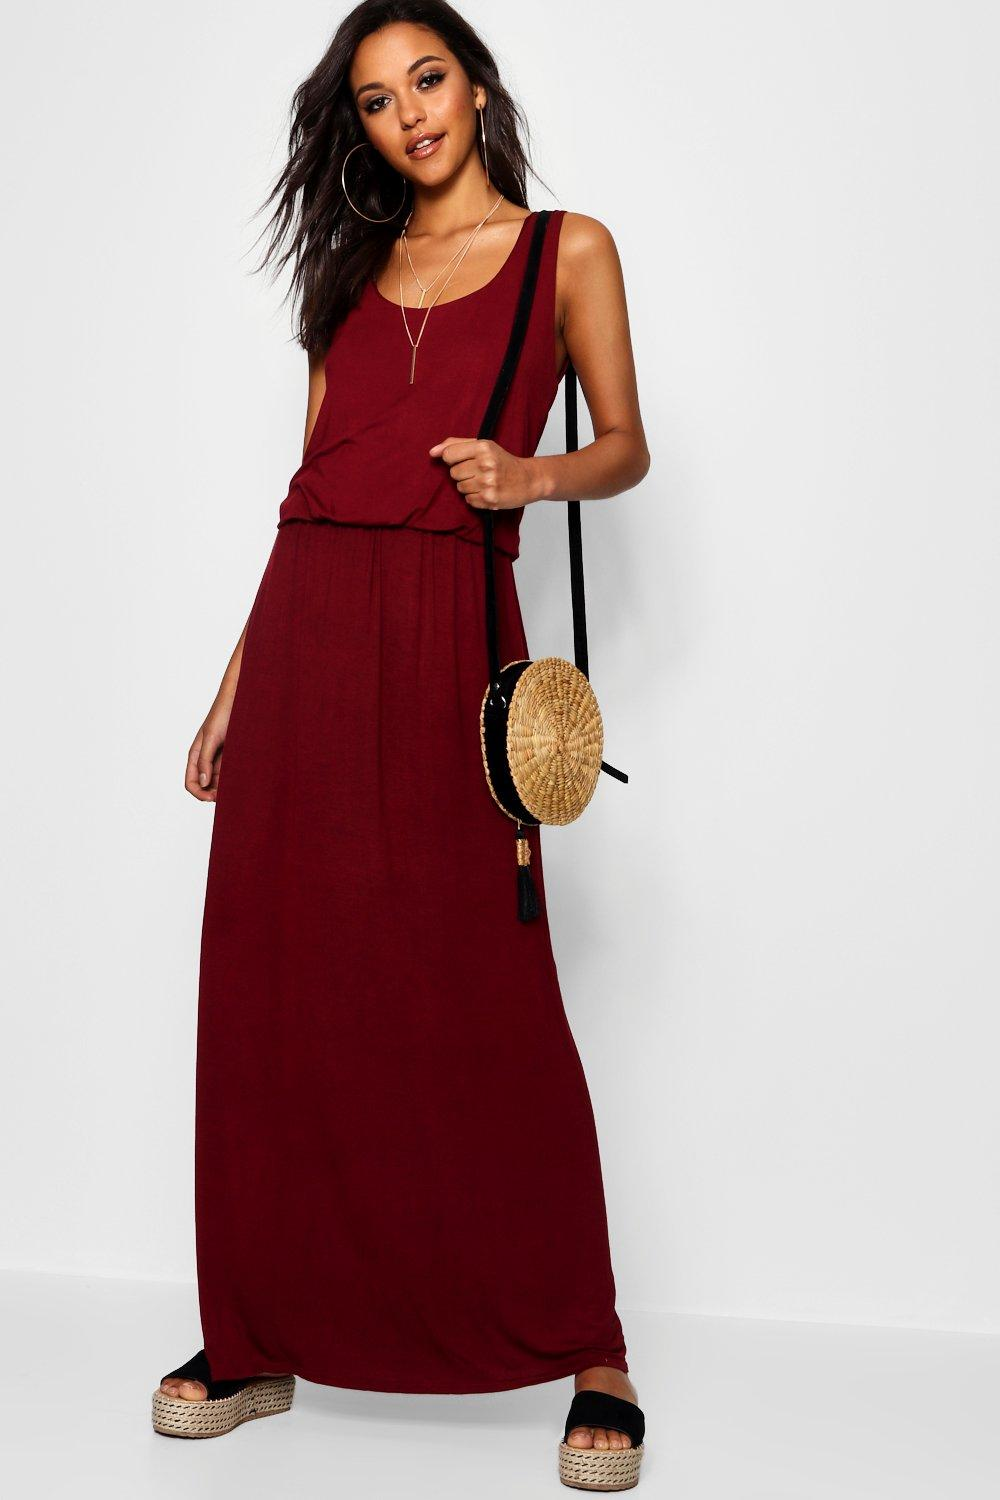 boohoo Serena Bagged Over Racer Back Maxi Dress - berry